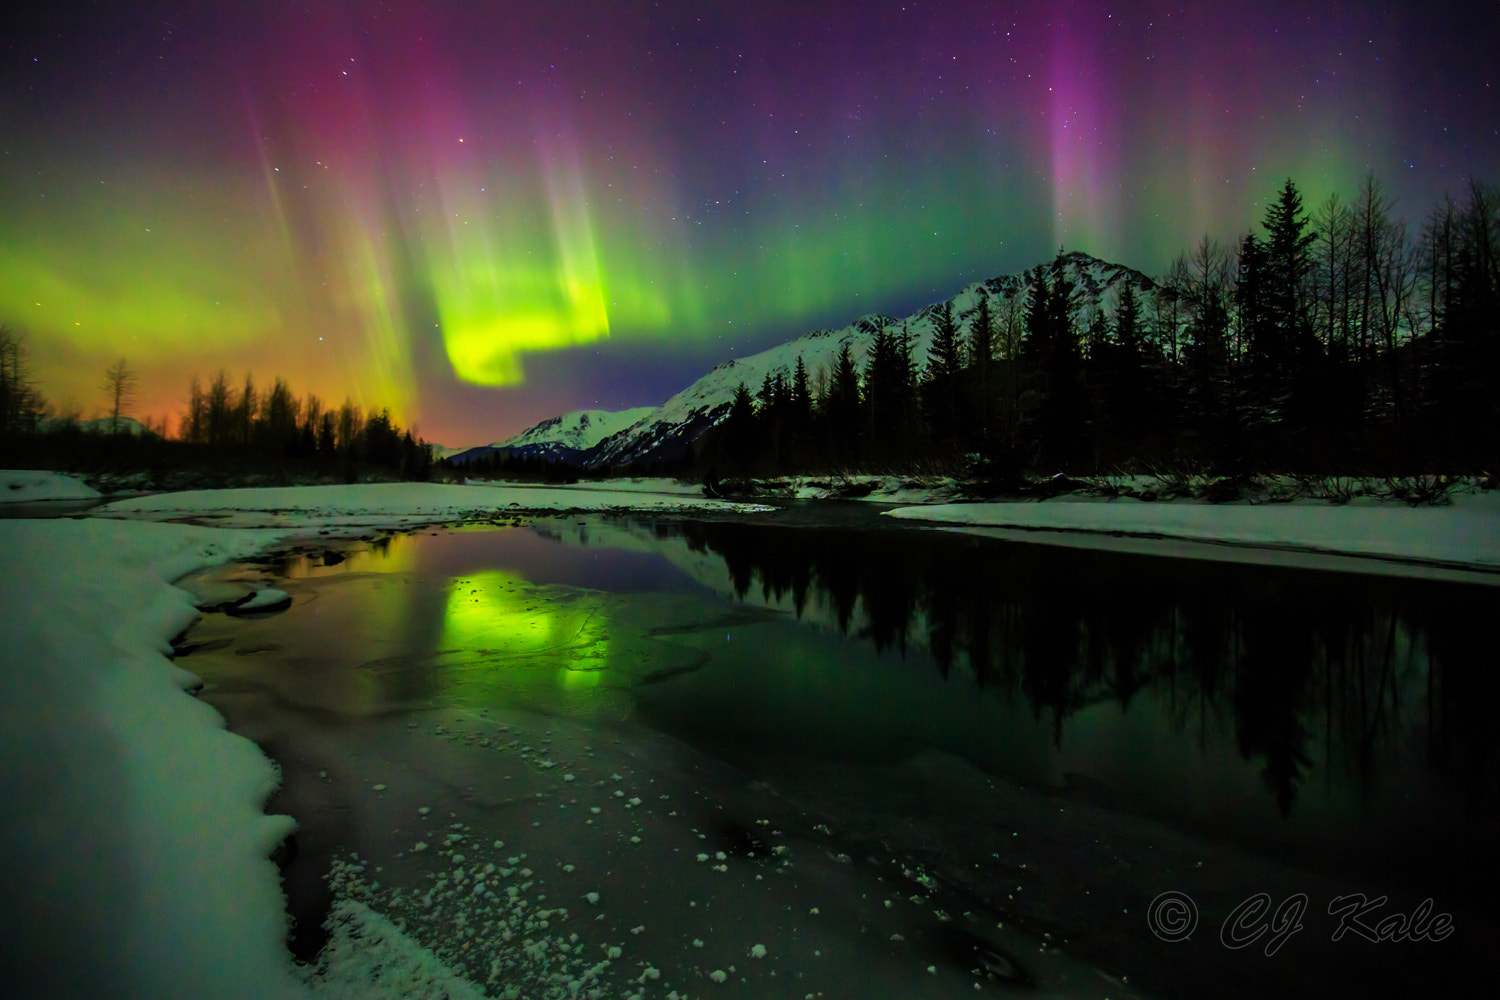 Photograph Aurora Dreamscape by Cj Kale on 500px